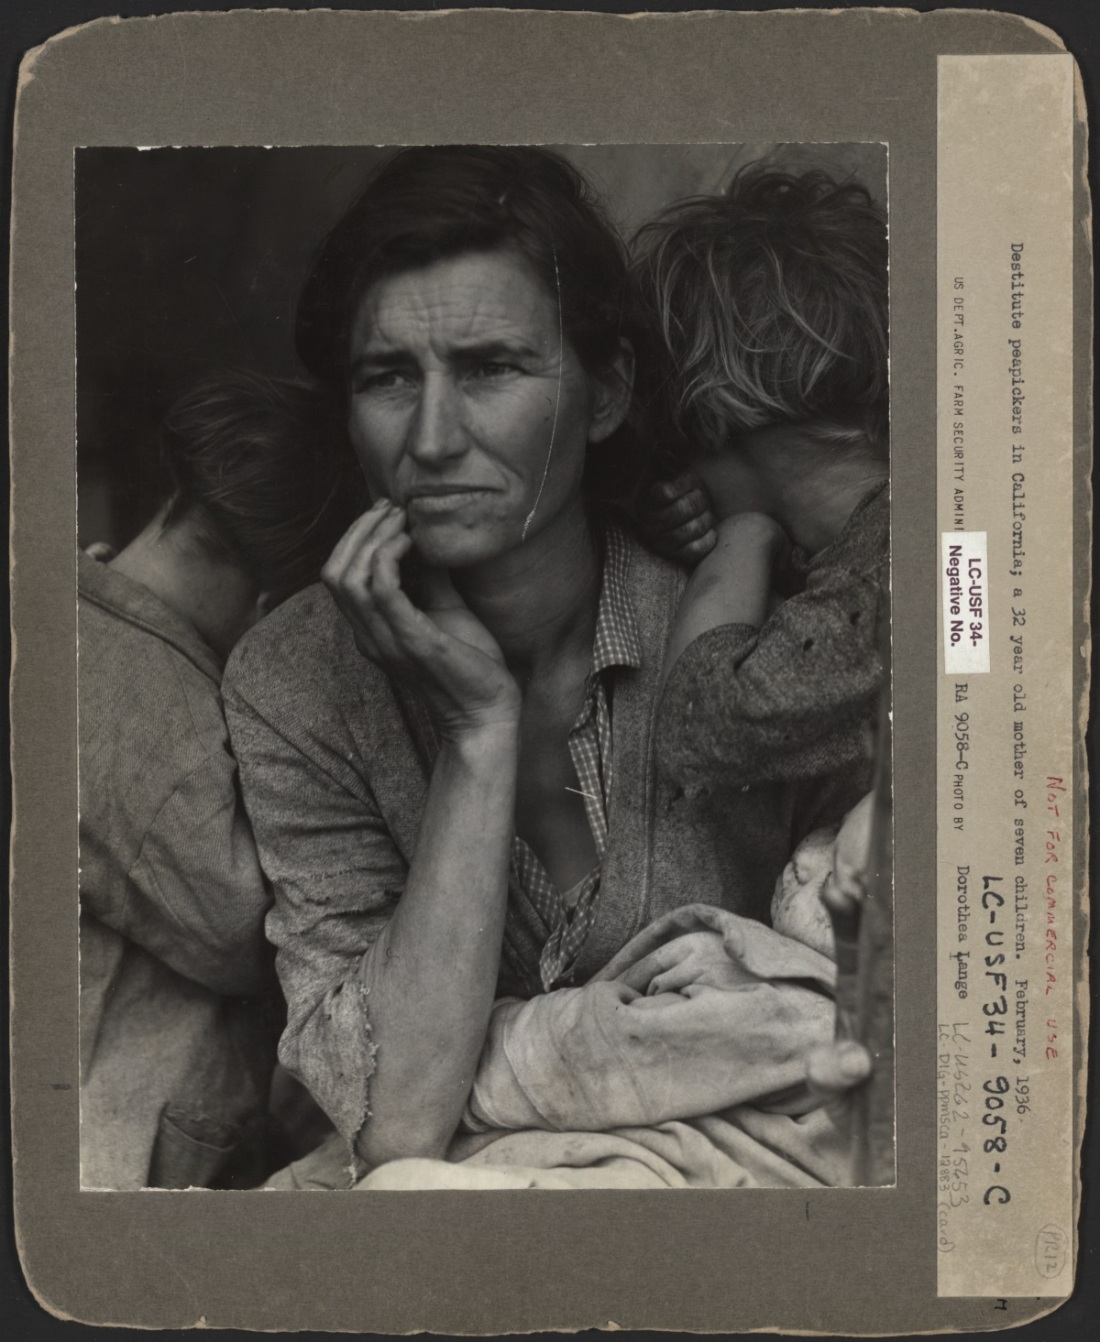 Dorothea Lange, Migrant Mother, 1936. Collection of the Library of Congress, Washington.